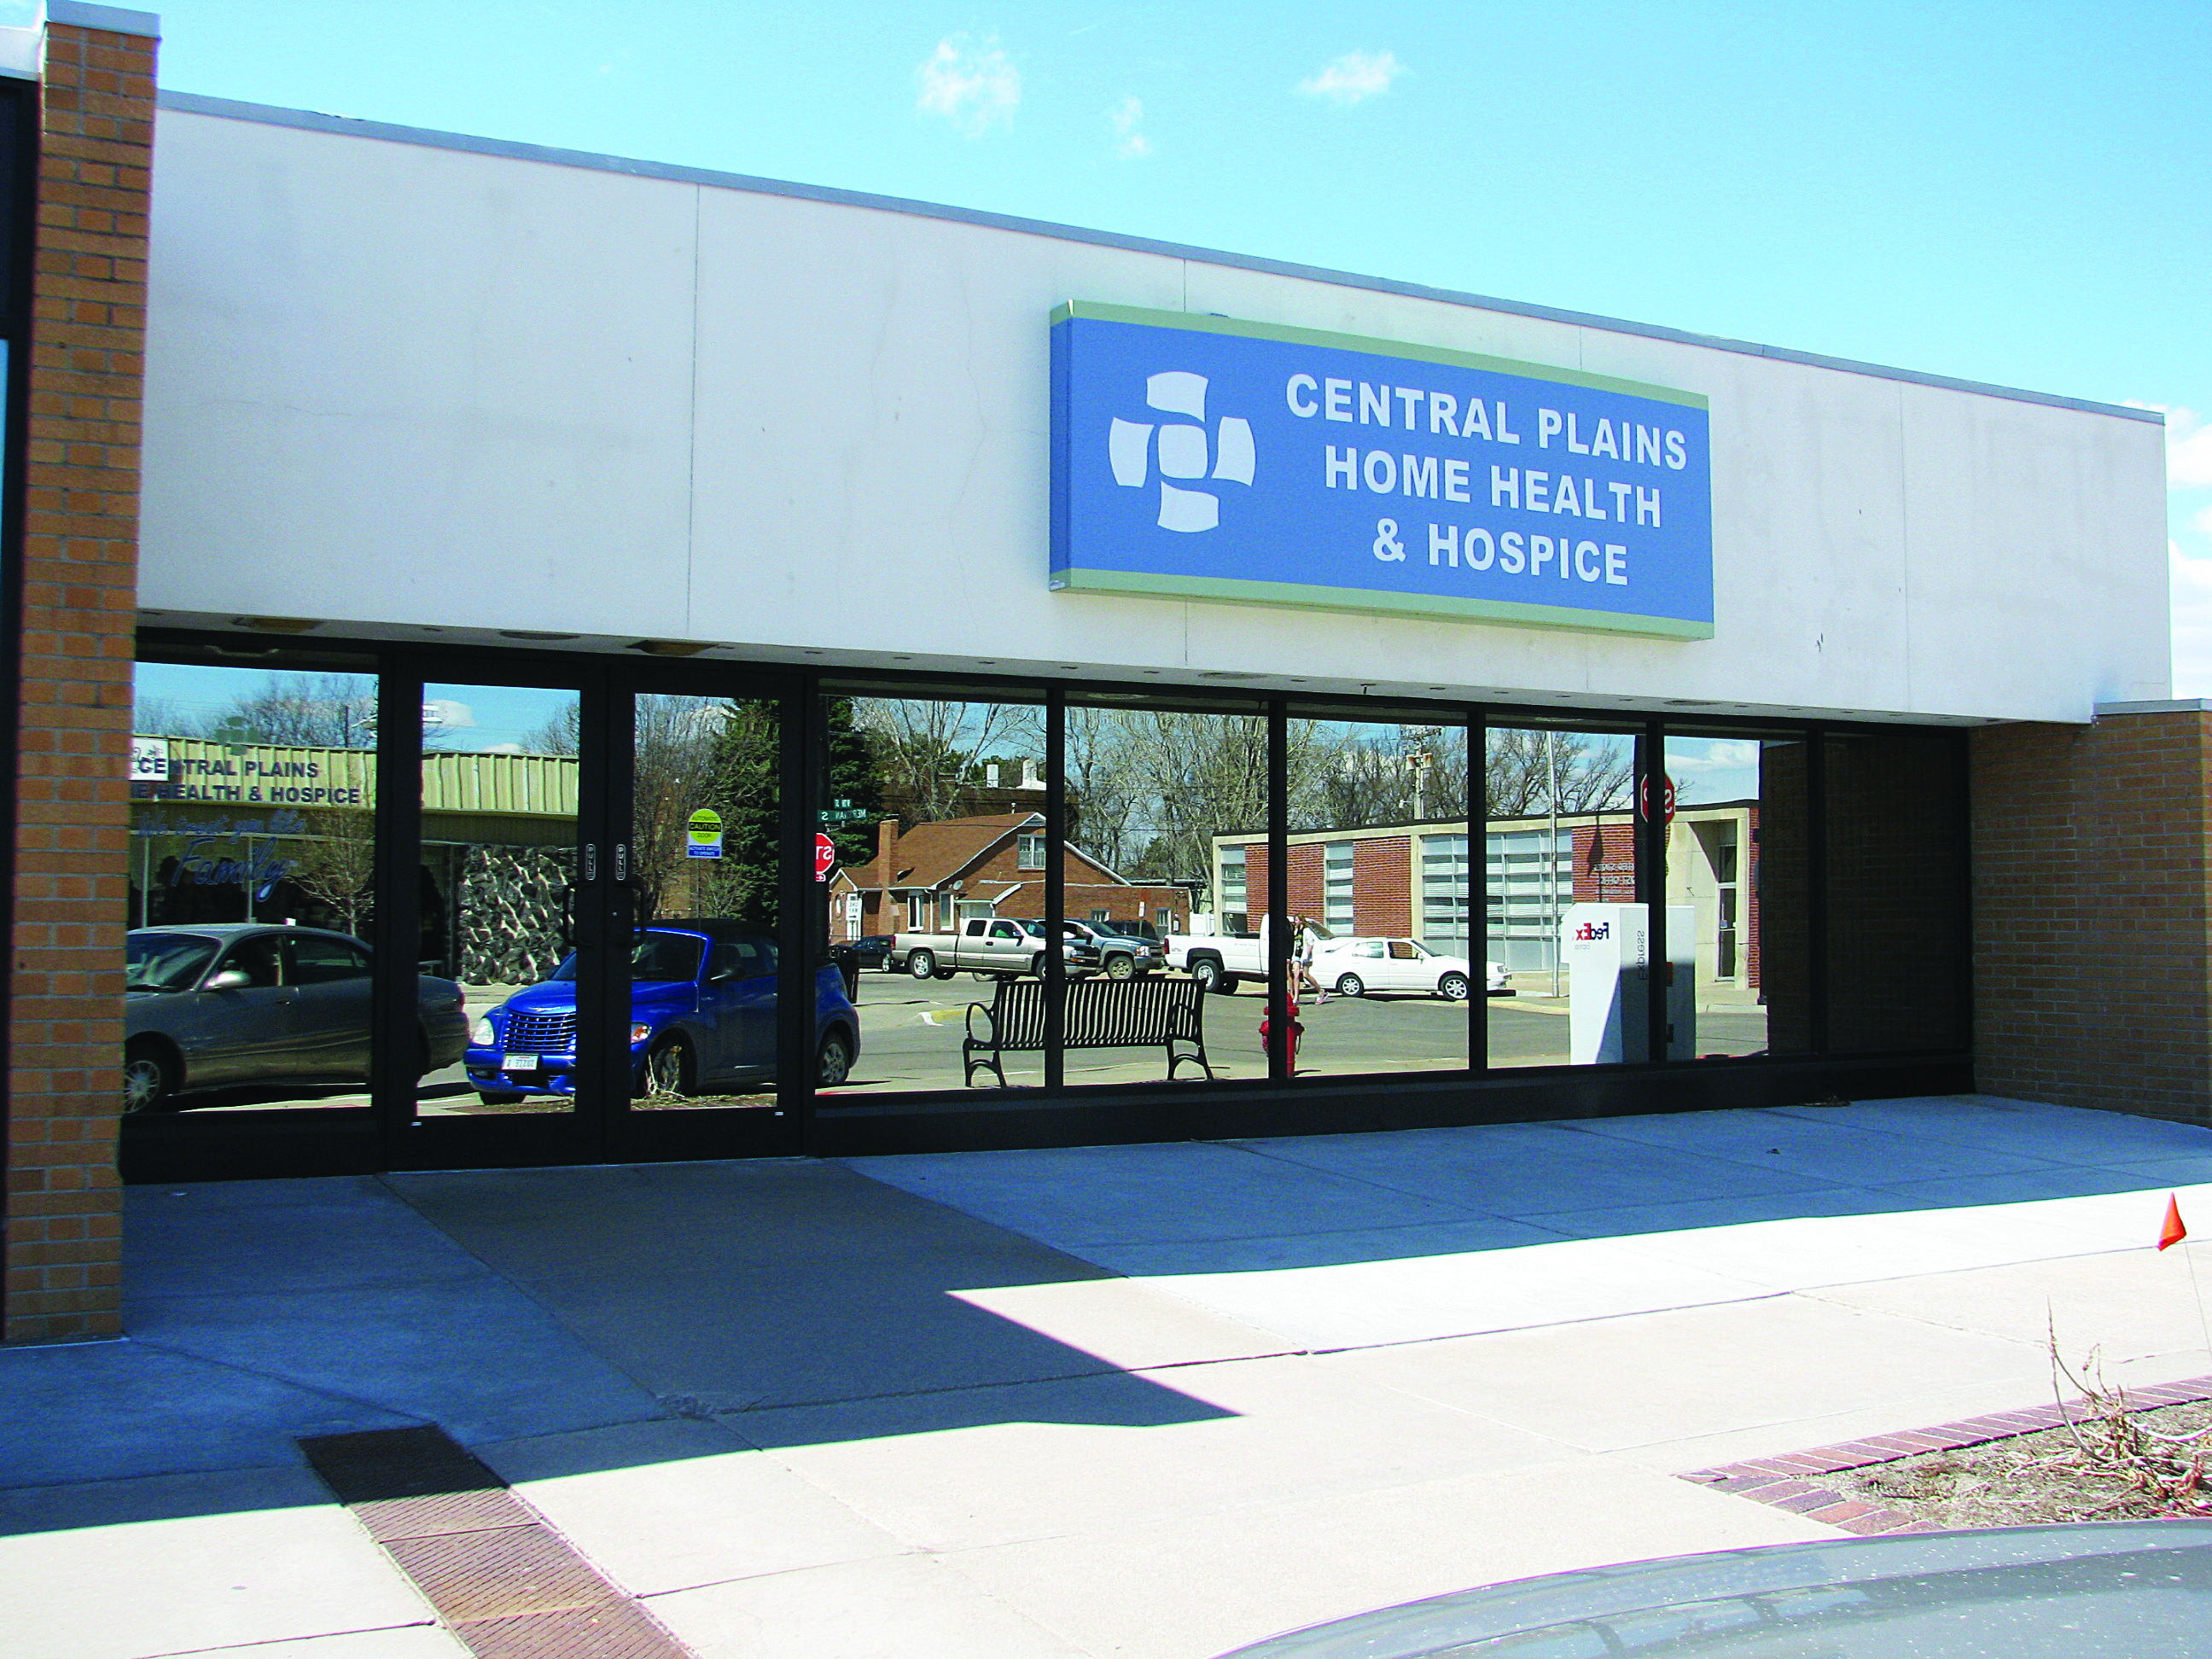 Central Plains Home Health and Hospice